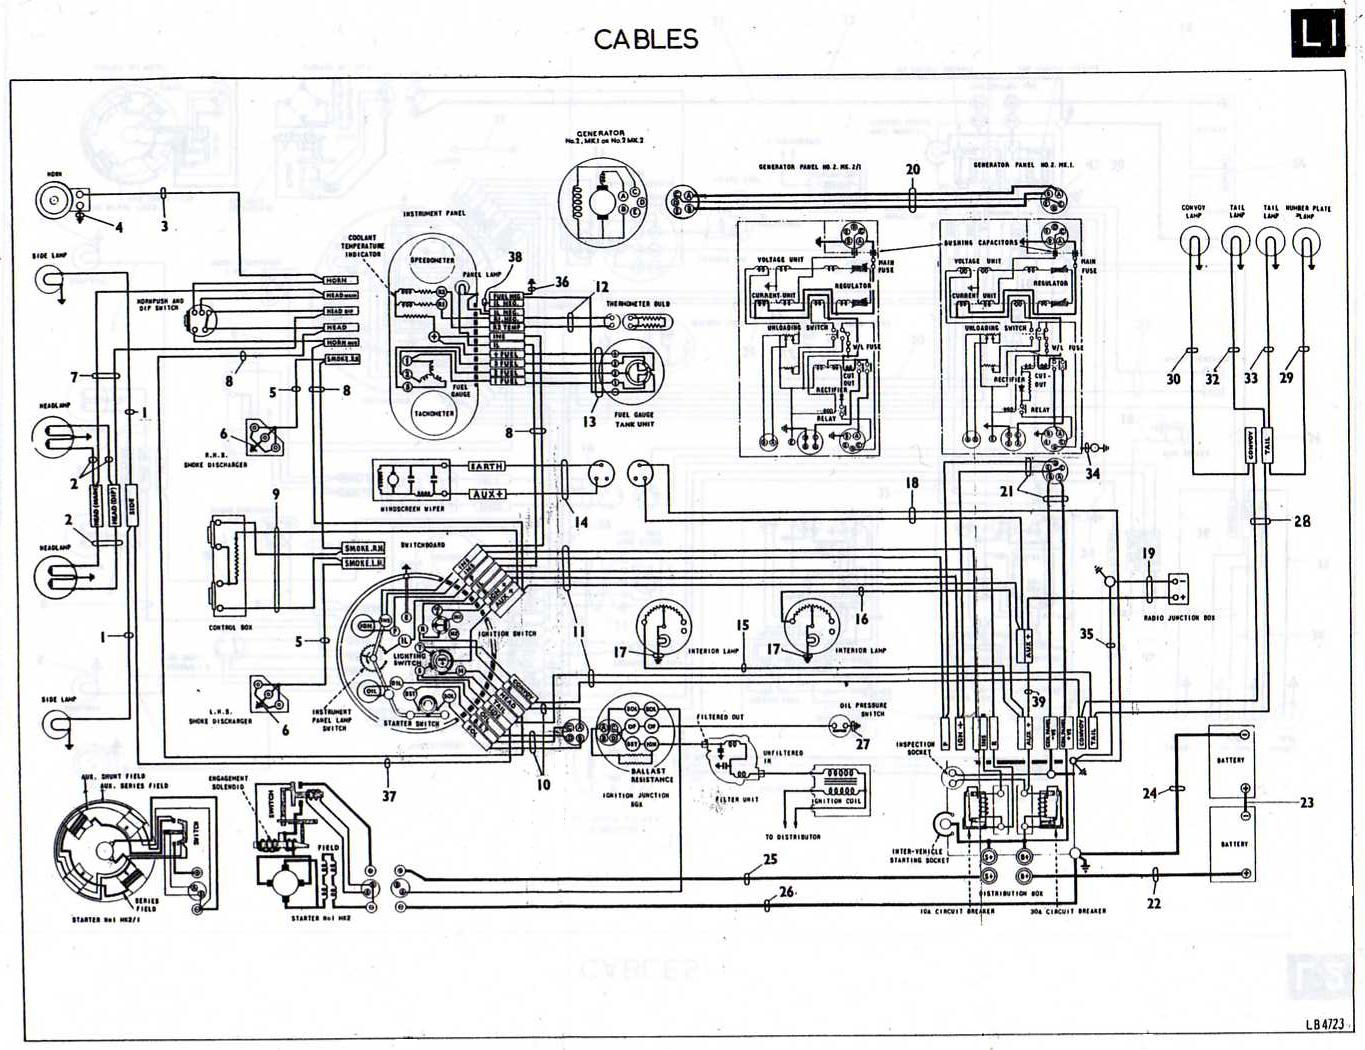 Daihatsu Mira L2 Wiring Diagram Schematics Diagrams Irregular Idle Cuore 10 Youtube Example Electrical U2022 Rh Emilyalbert Co 1990 2000